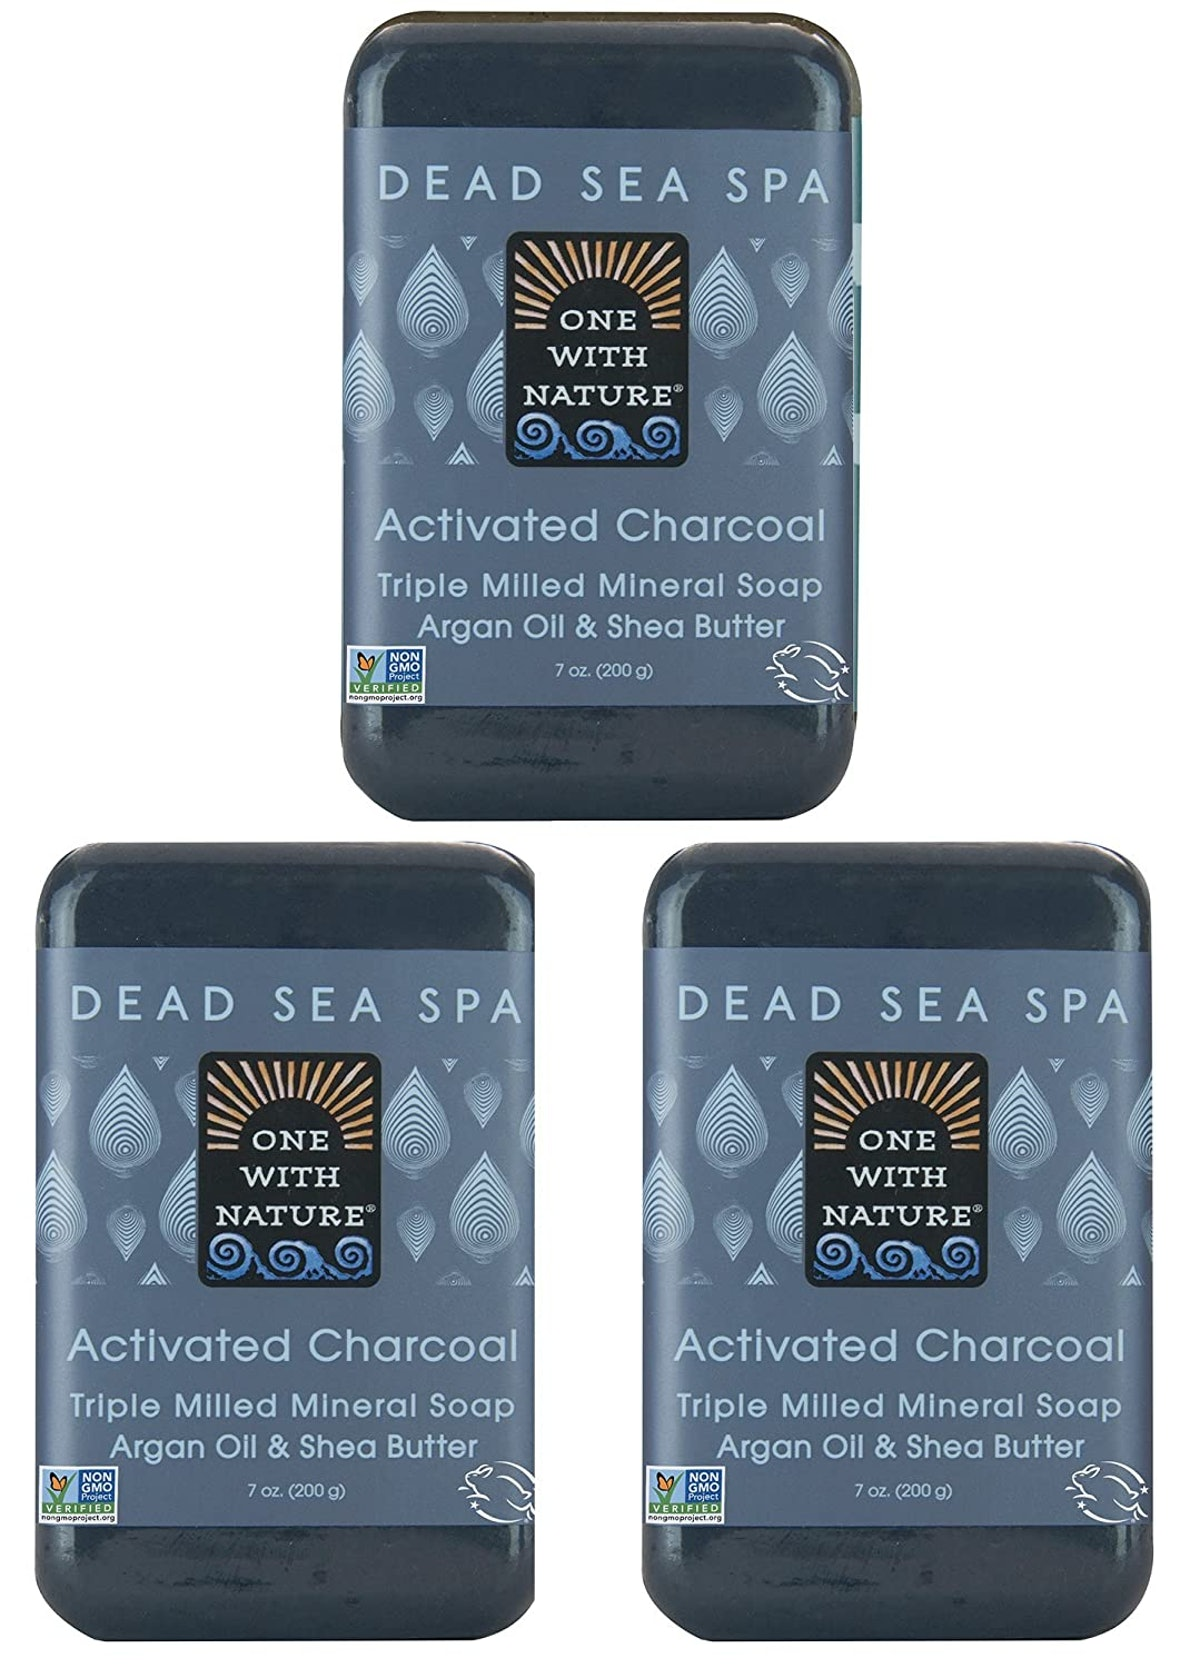 One With Nature Dead Sea Spa Activated Charcoal Soap (3-Pack)